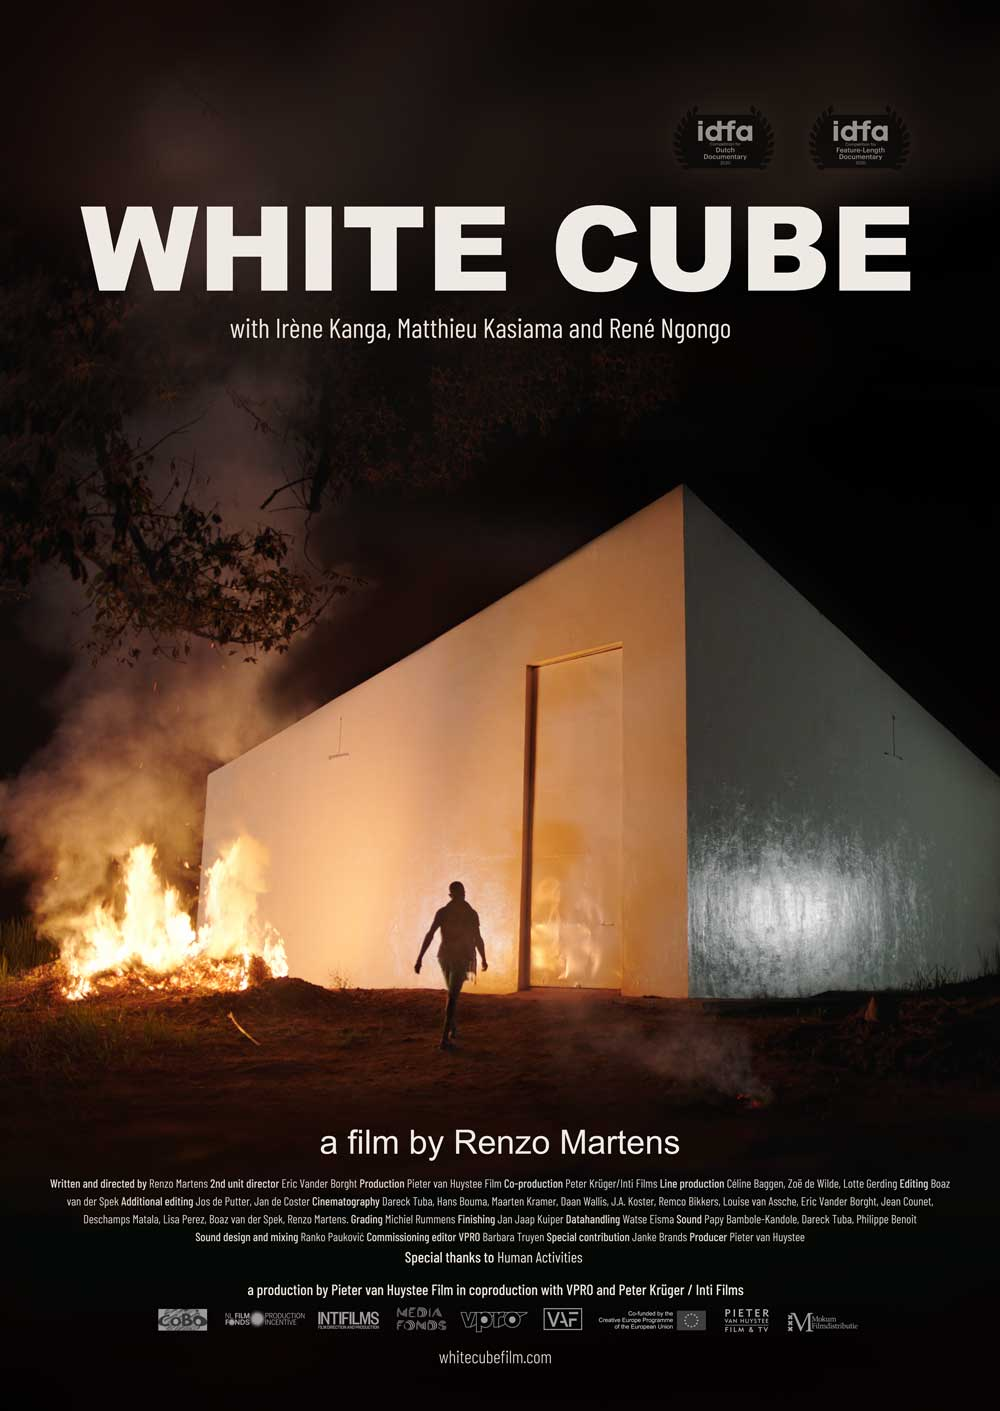 White-Cube_ps_1_jpg_sd-low